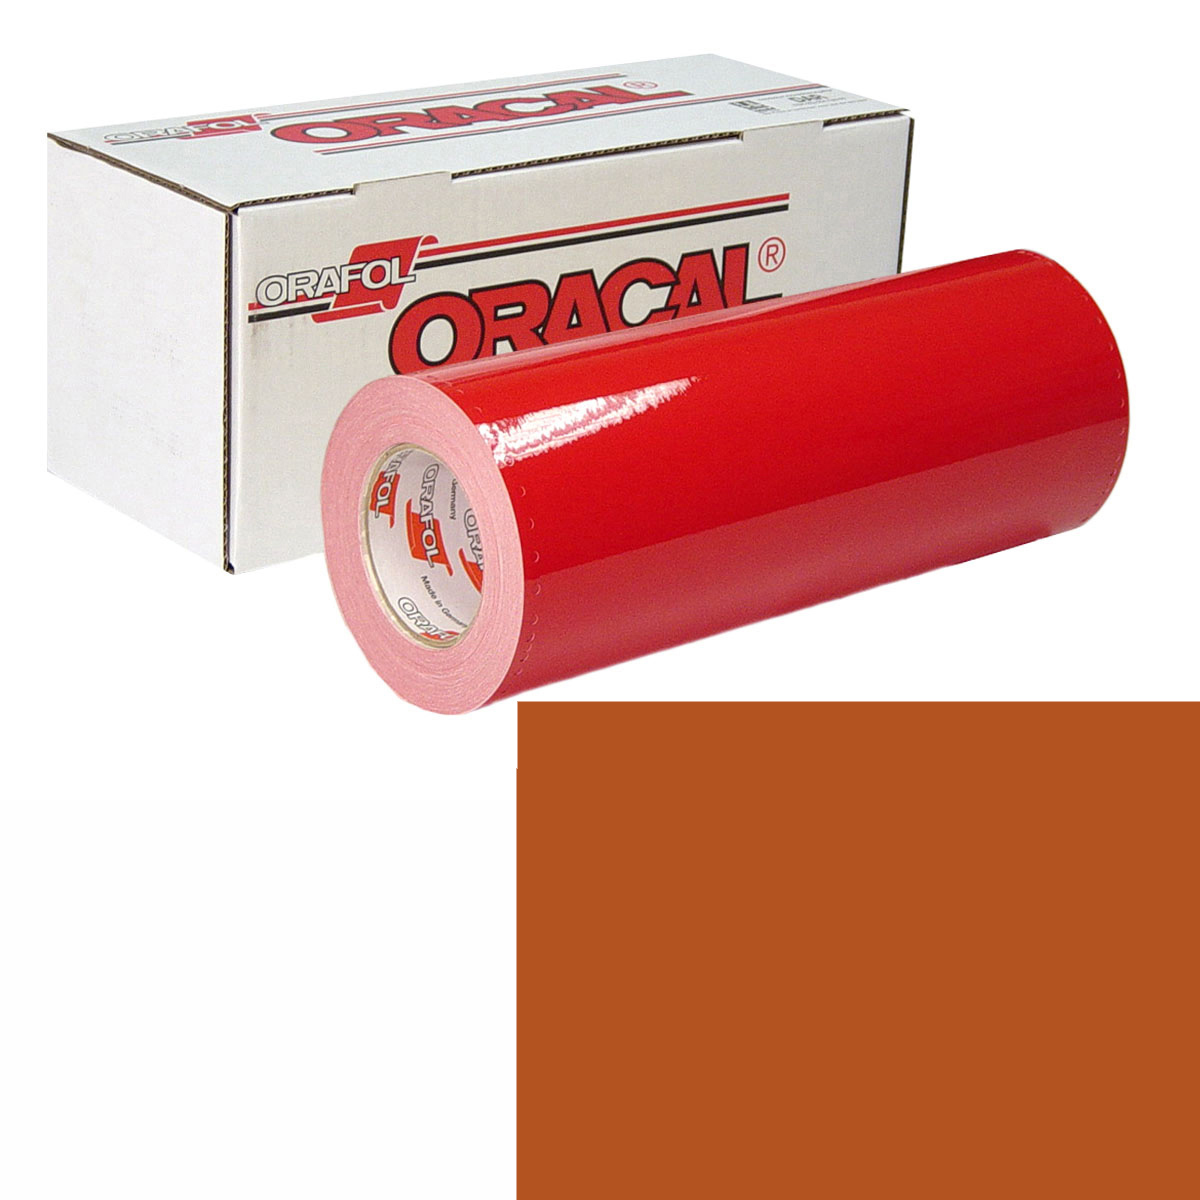 ORACAL 951 30in X 50yd 812 Terracotta